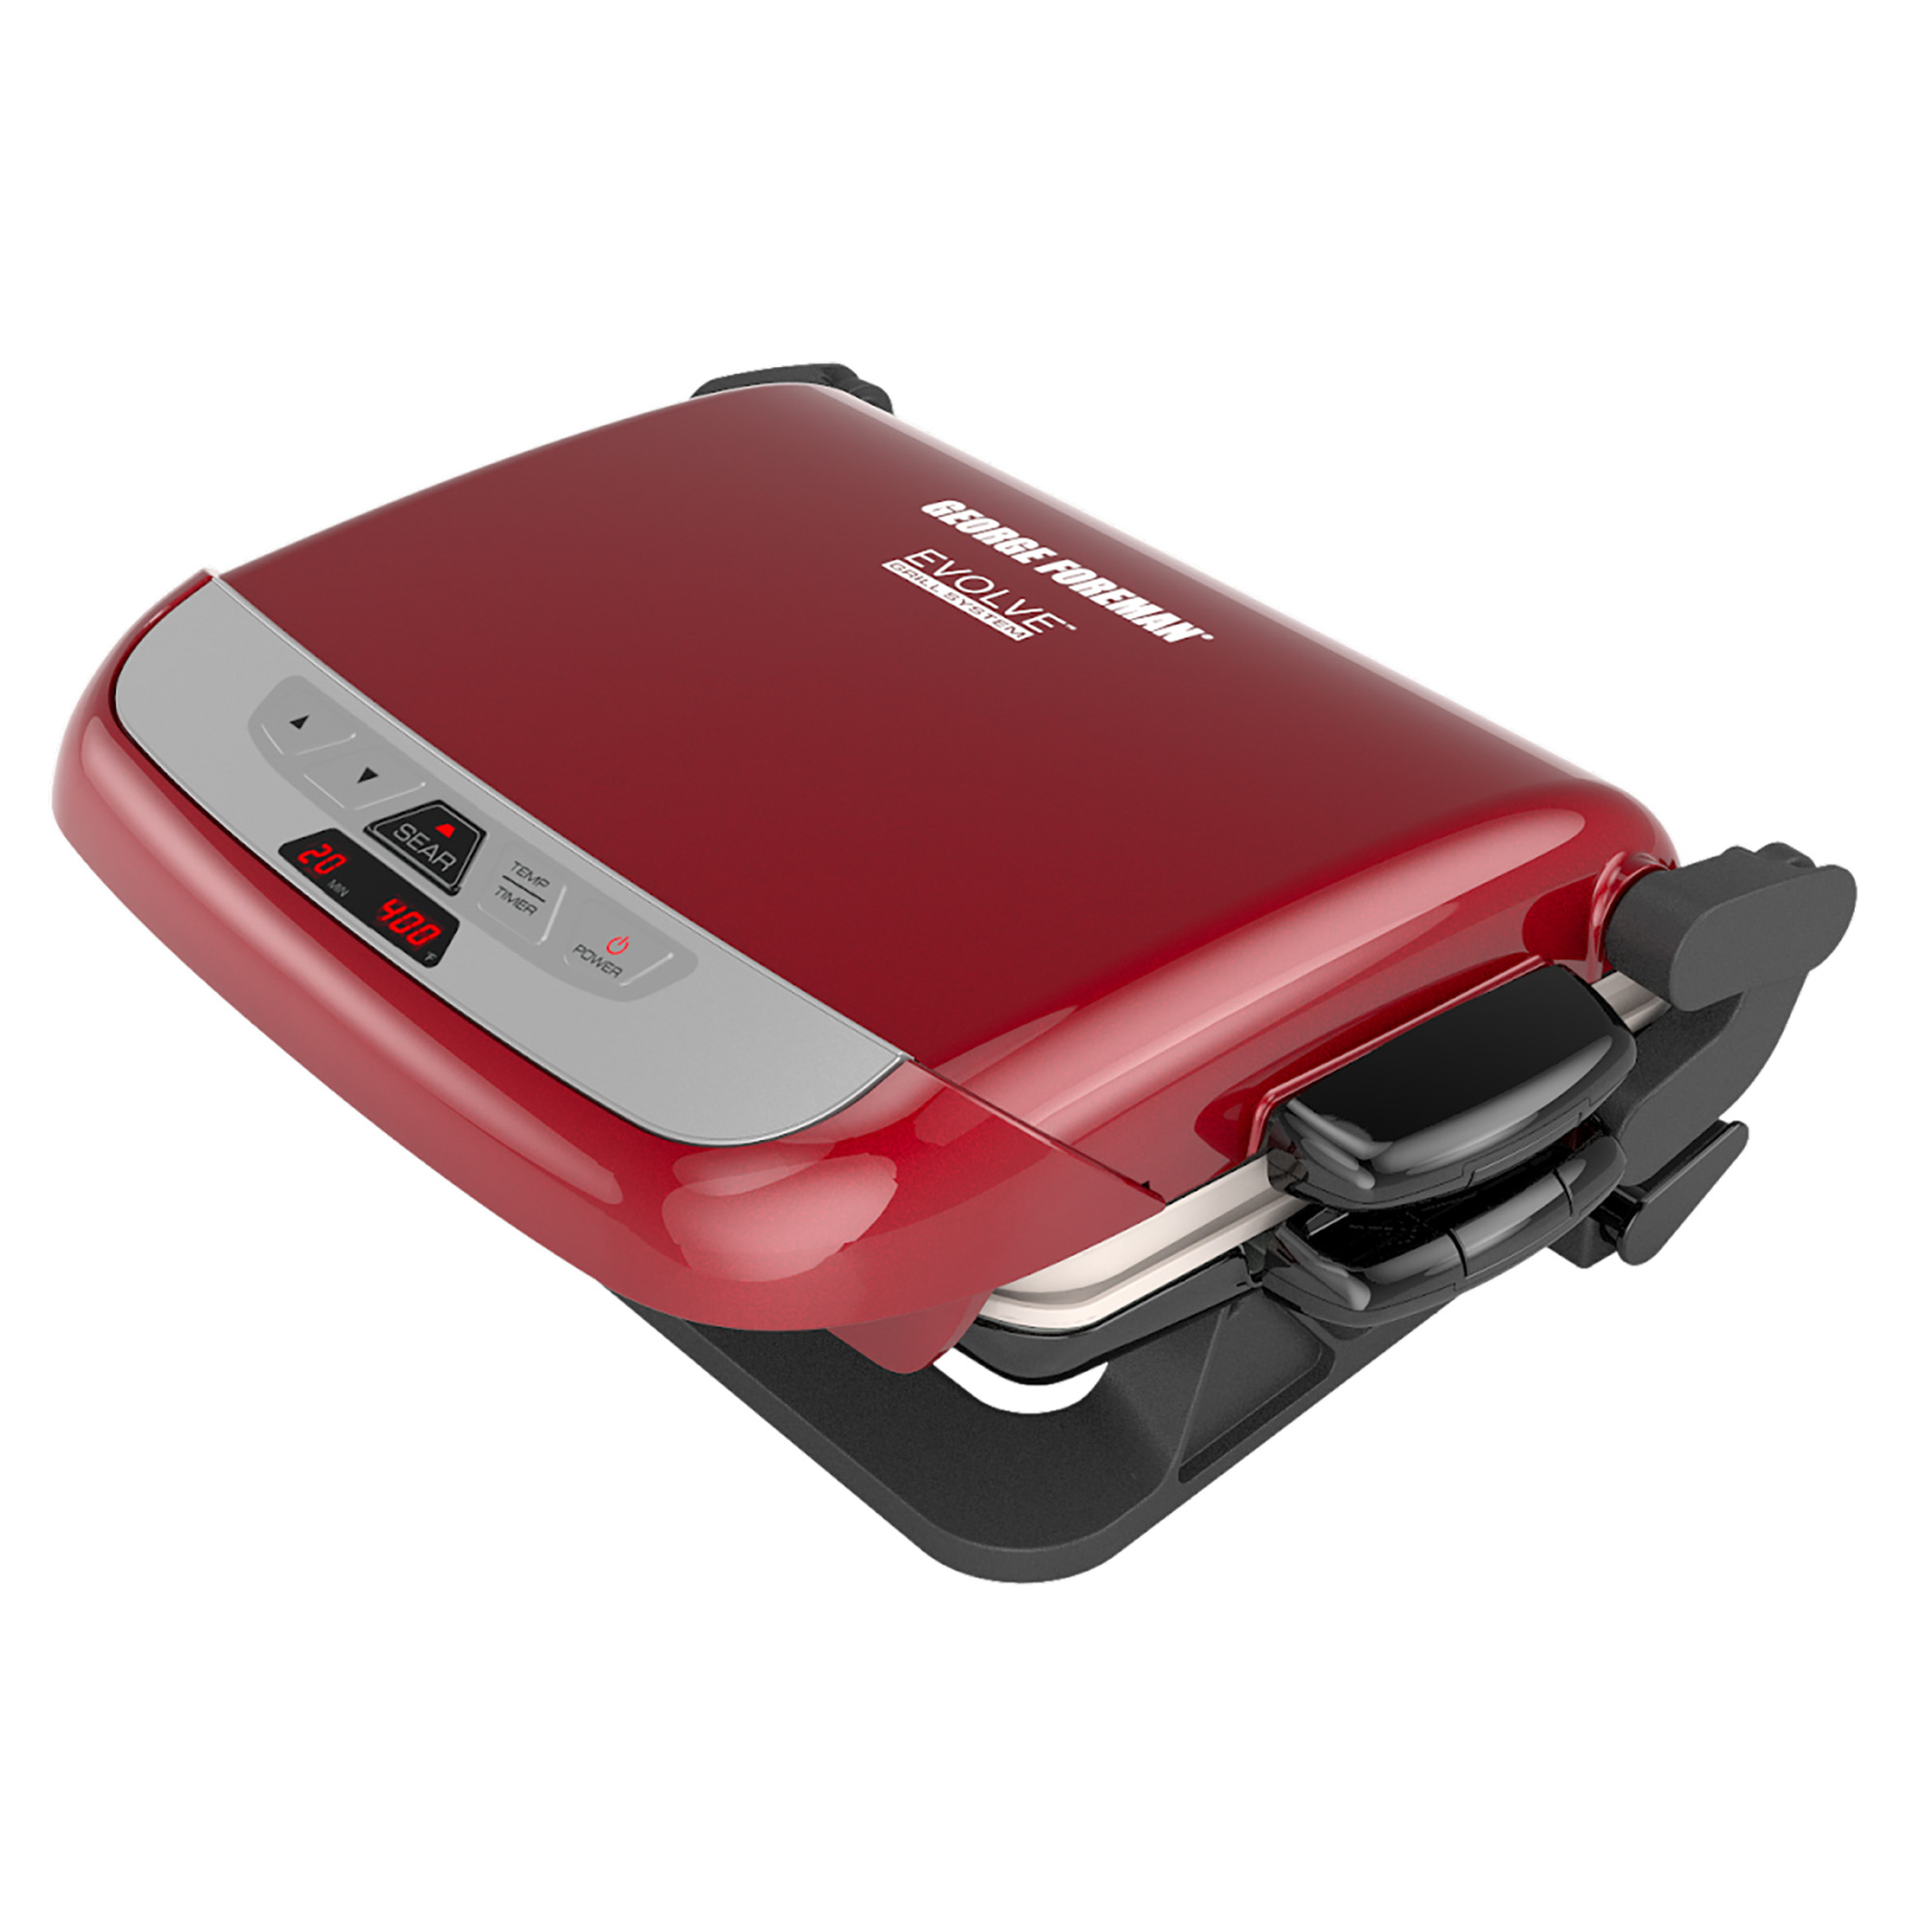 George Foreman Evolve Grill, Waffle Maker, Panini with Removable Plates, GRP4842R